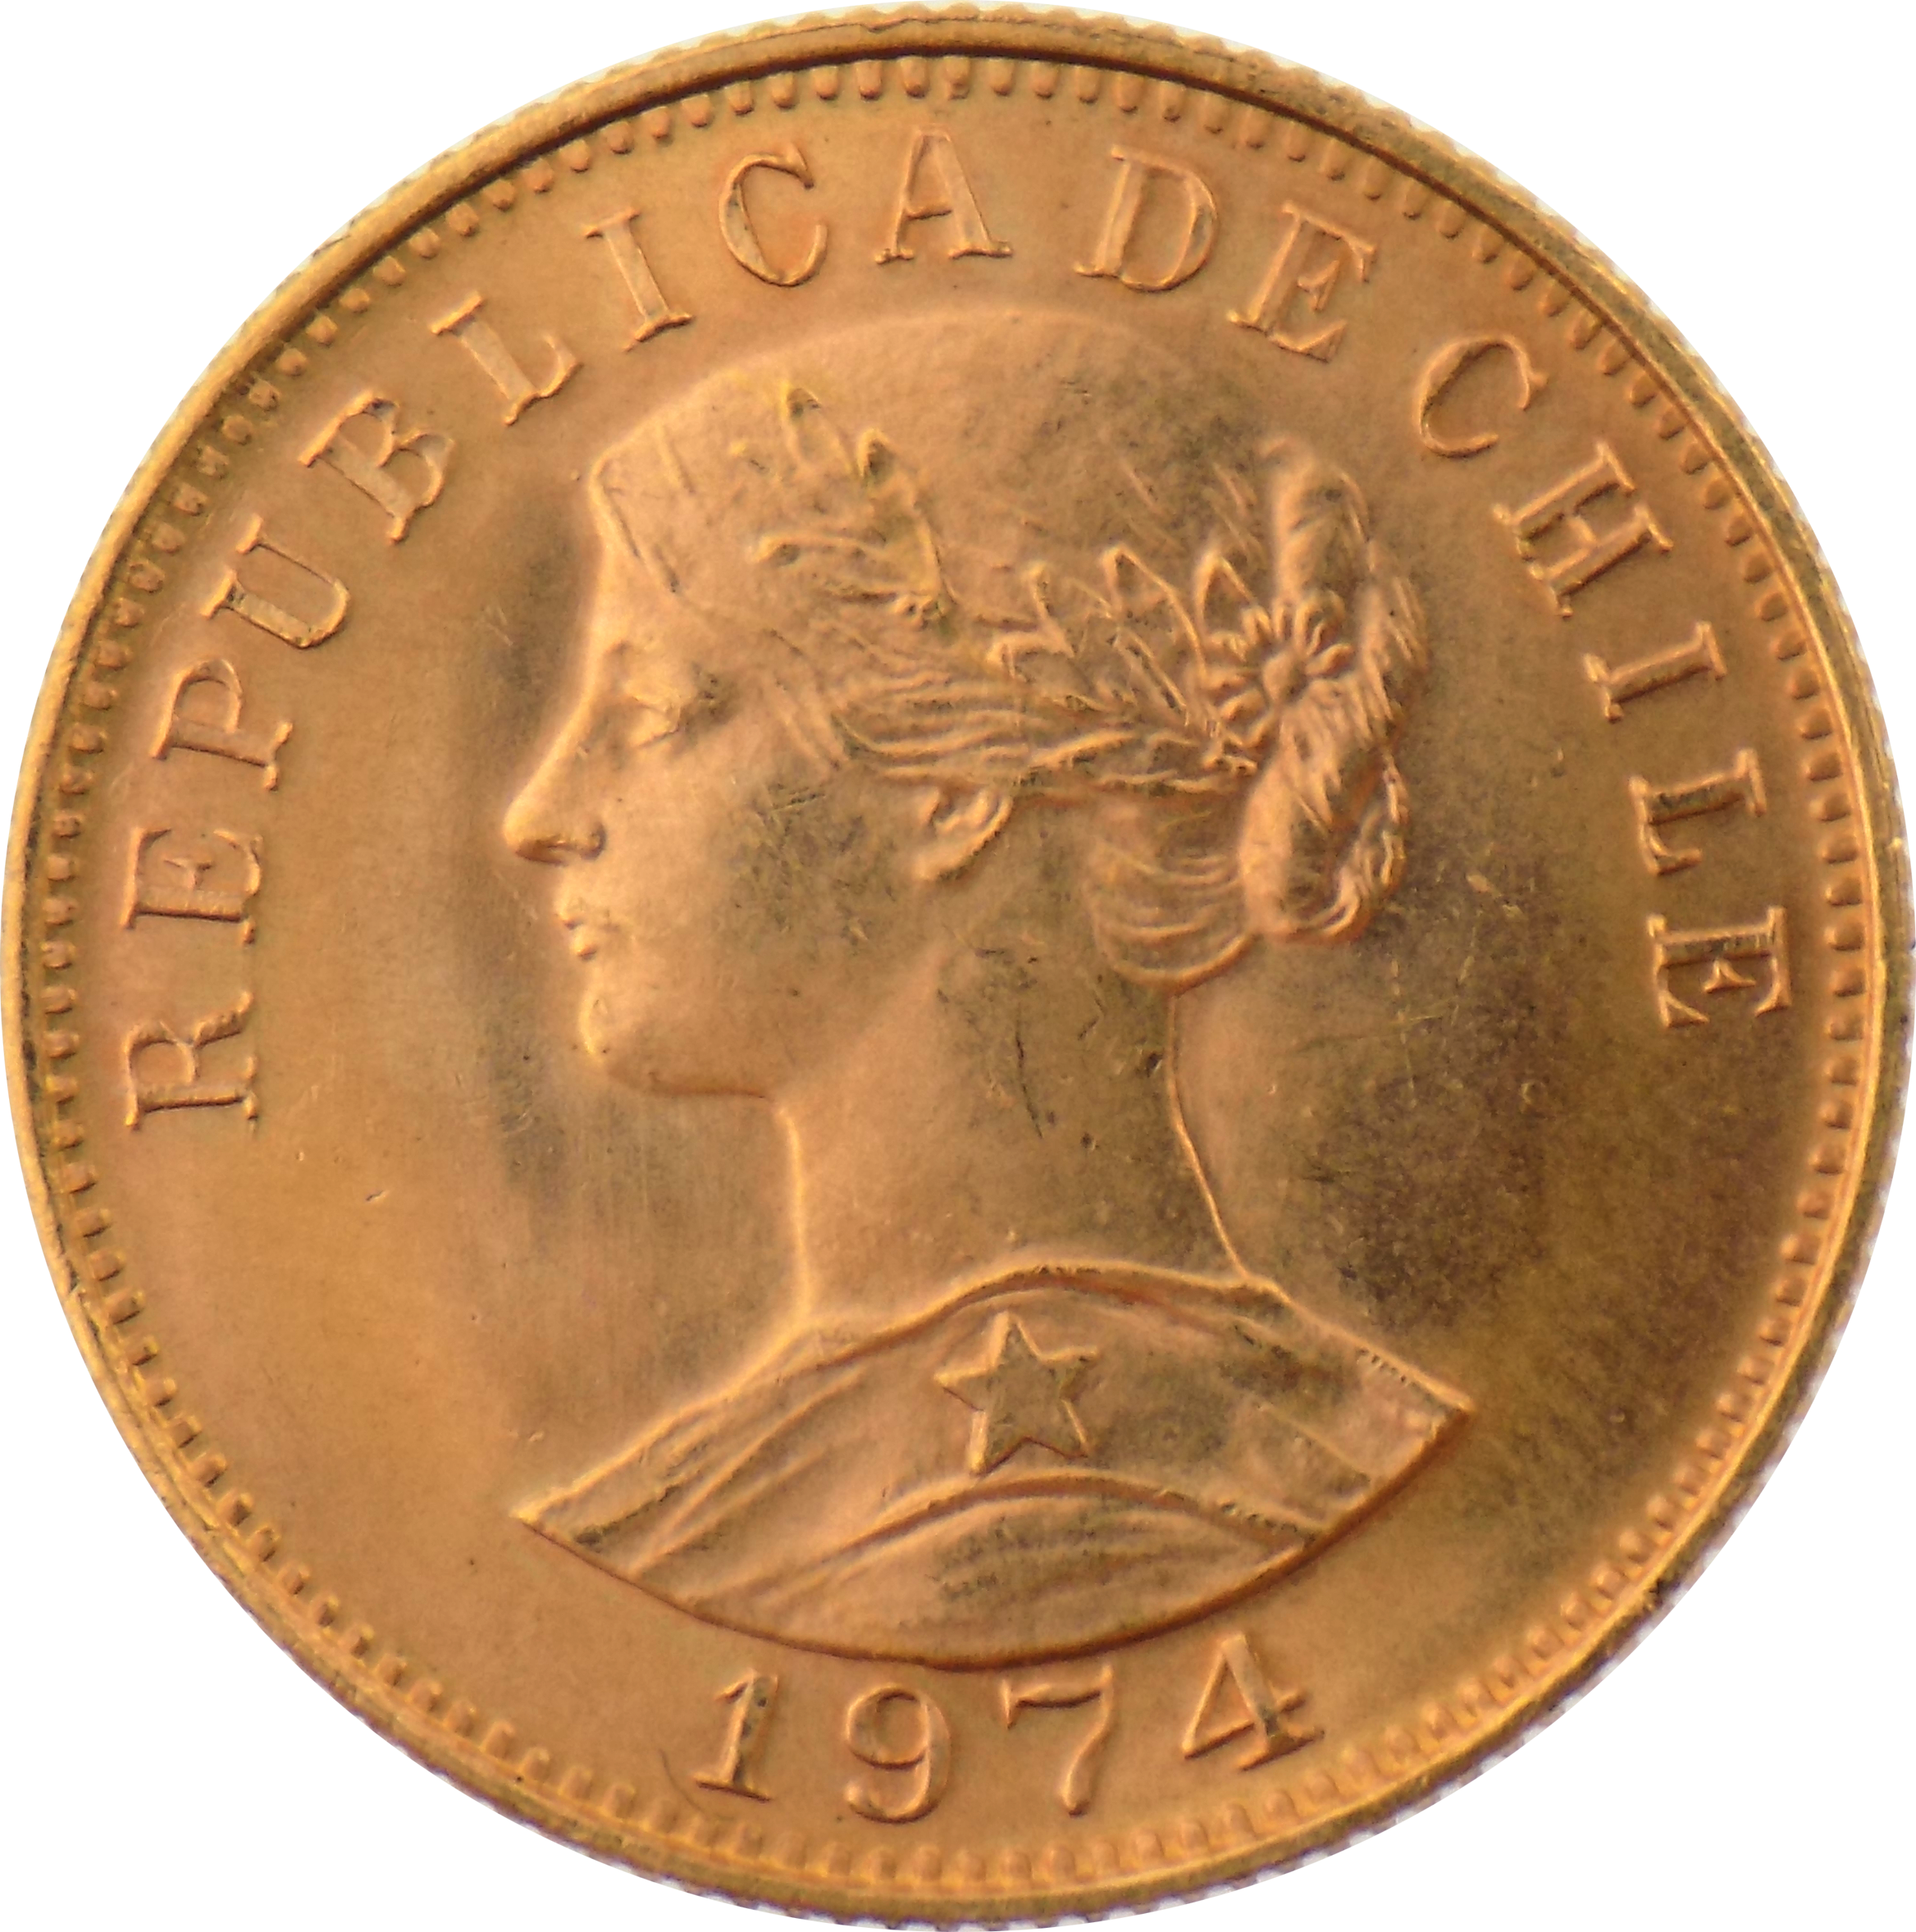 Pre-Owned 1974 Chile 50 Peso Gold Coin